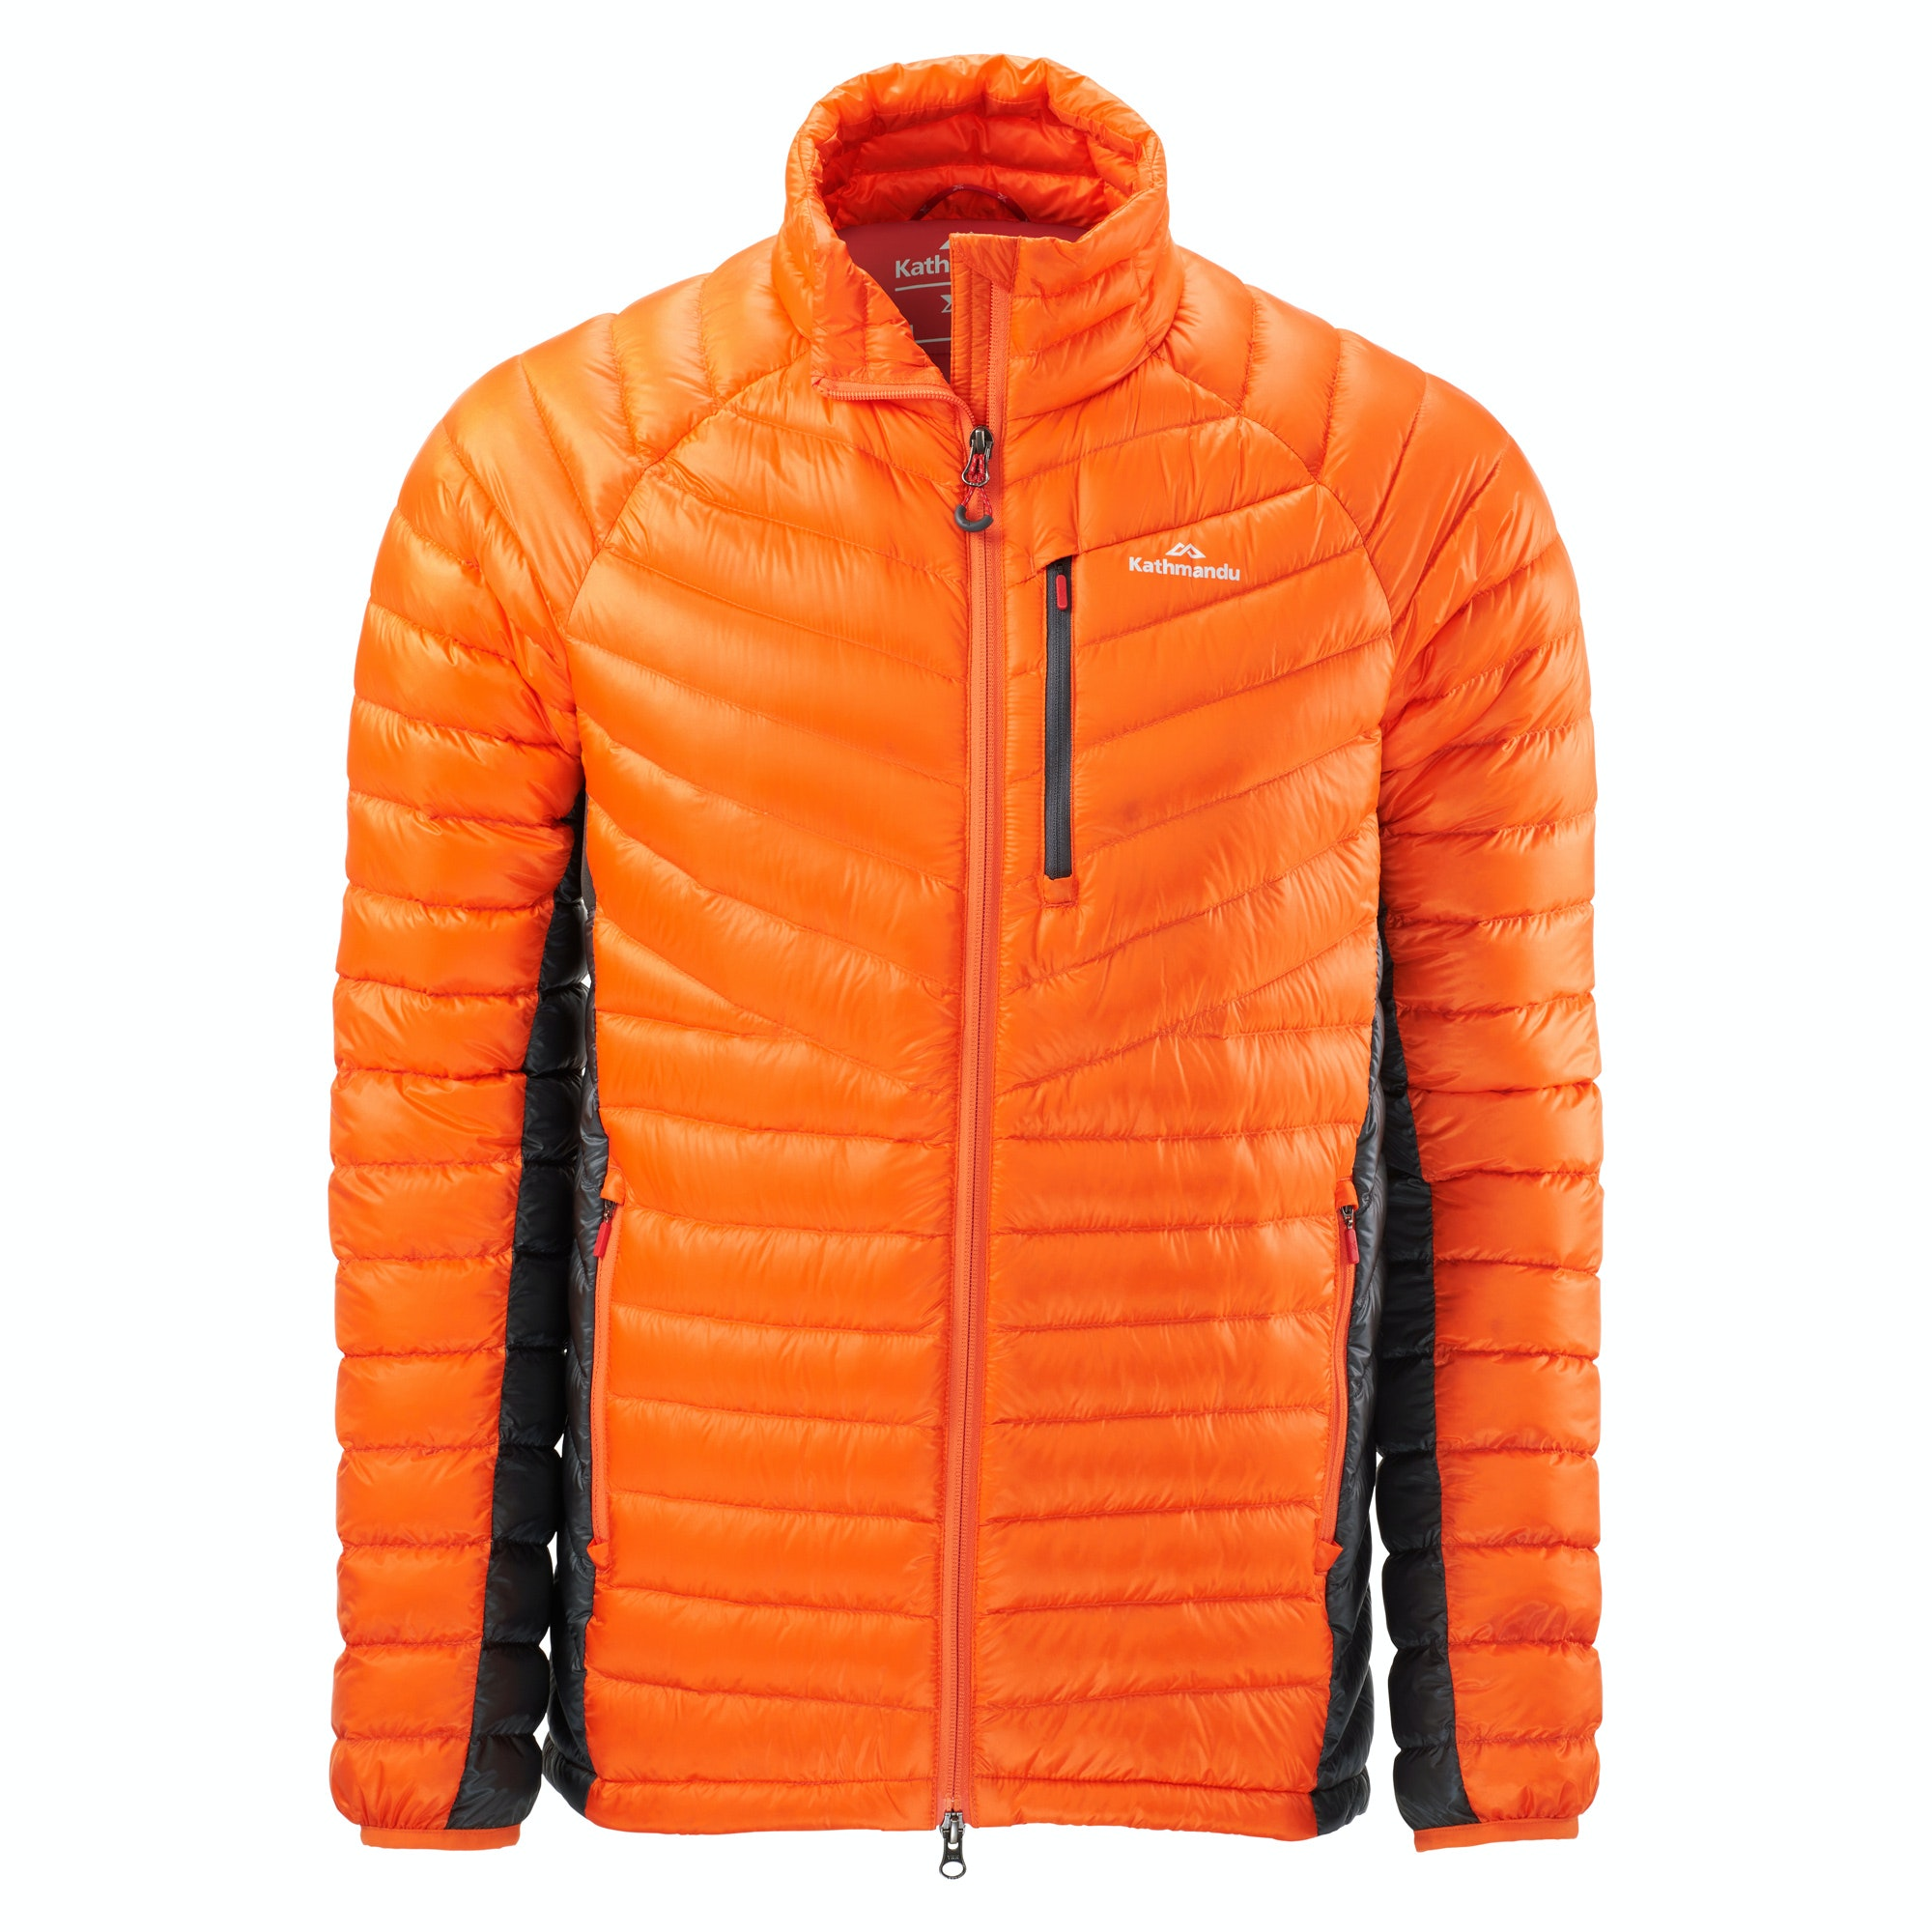 Kathmandu Xt Ultralight Mens Warm Insulated Down Winter